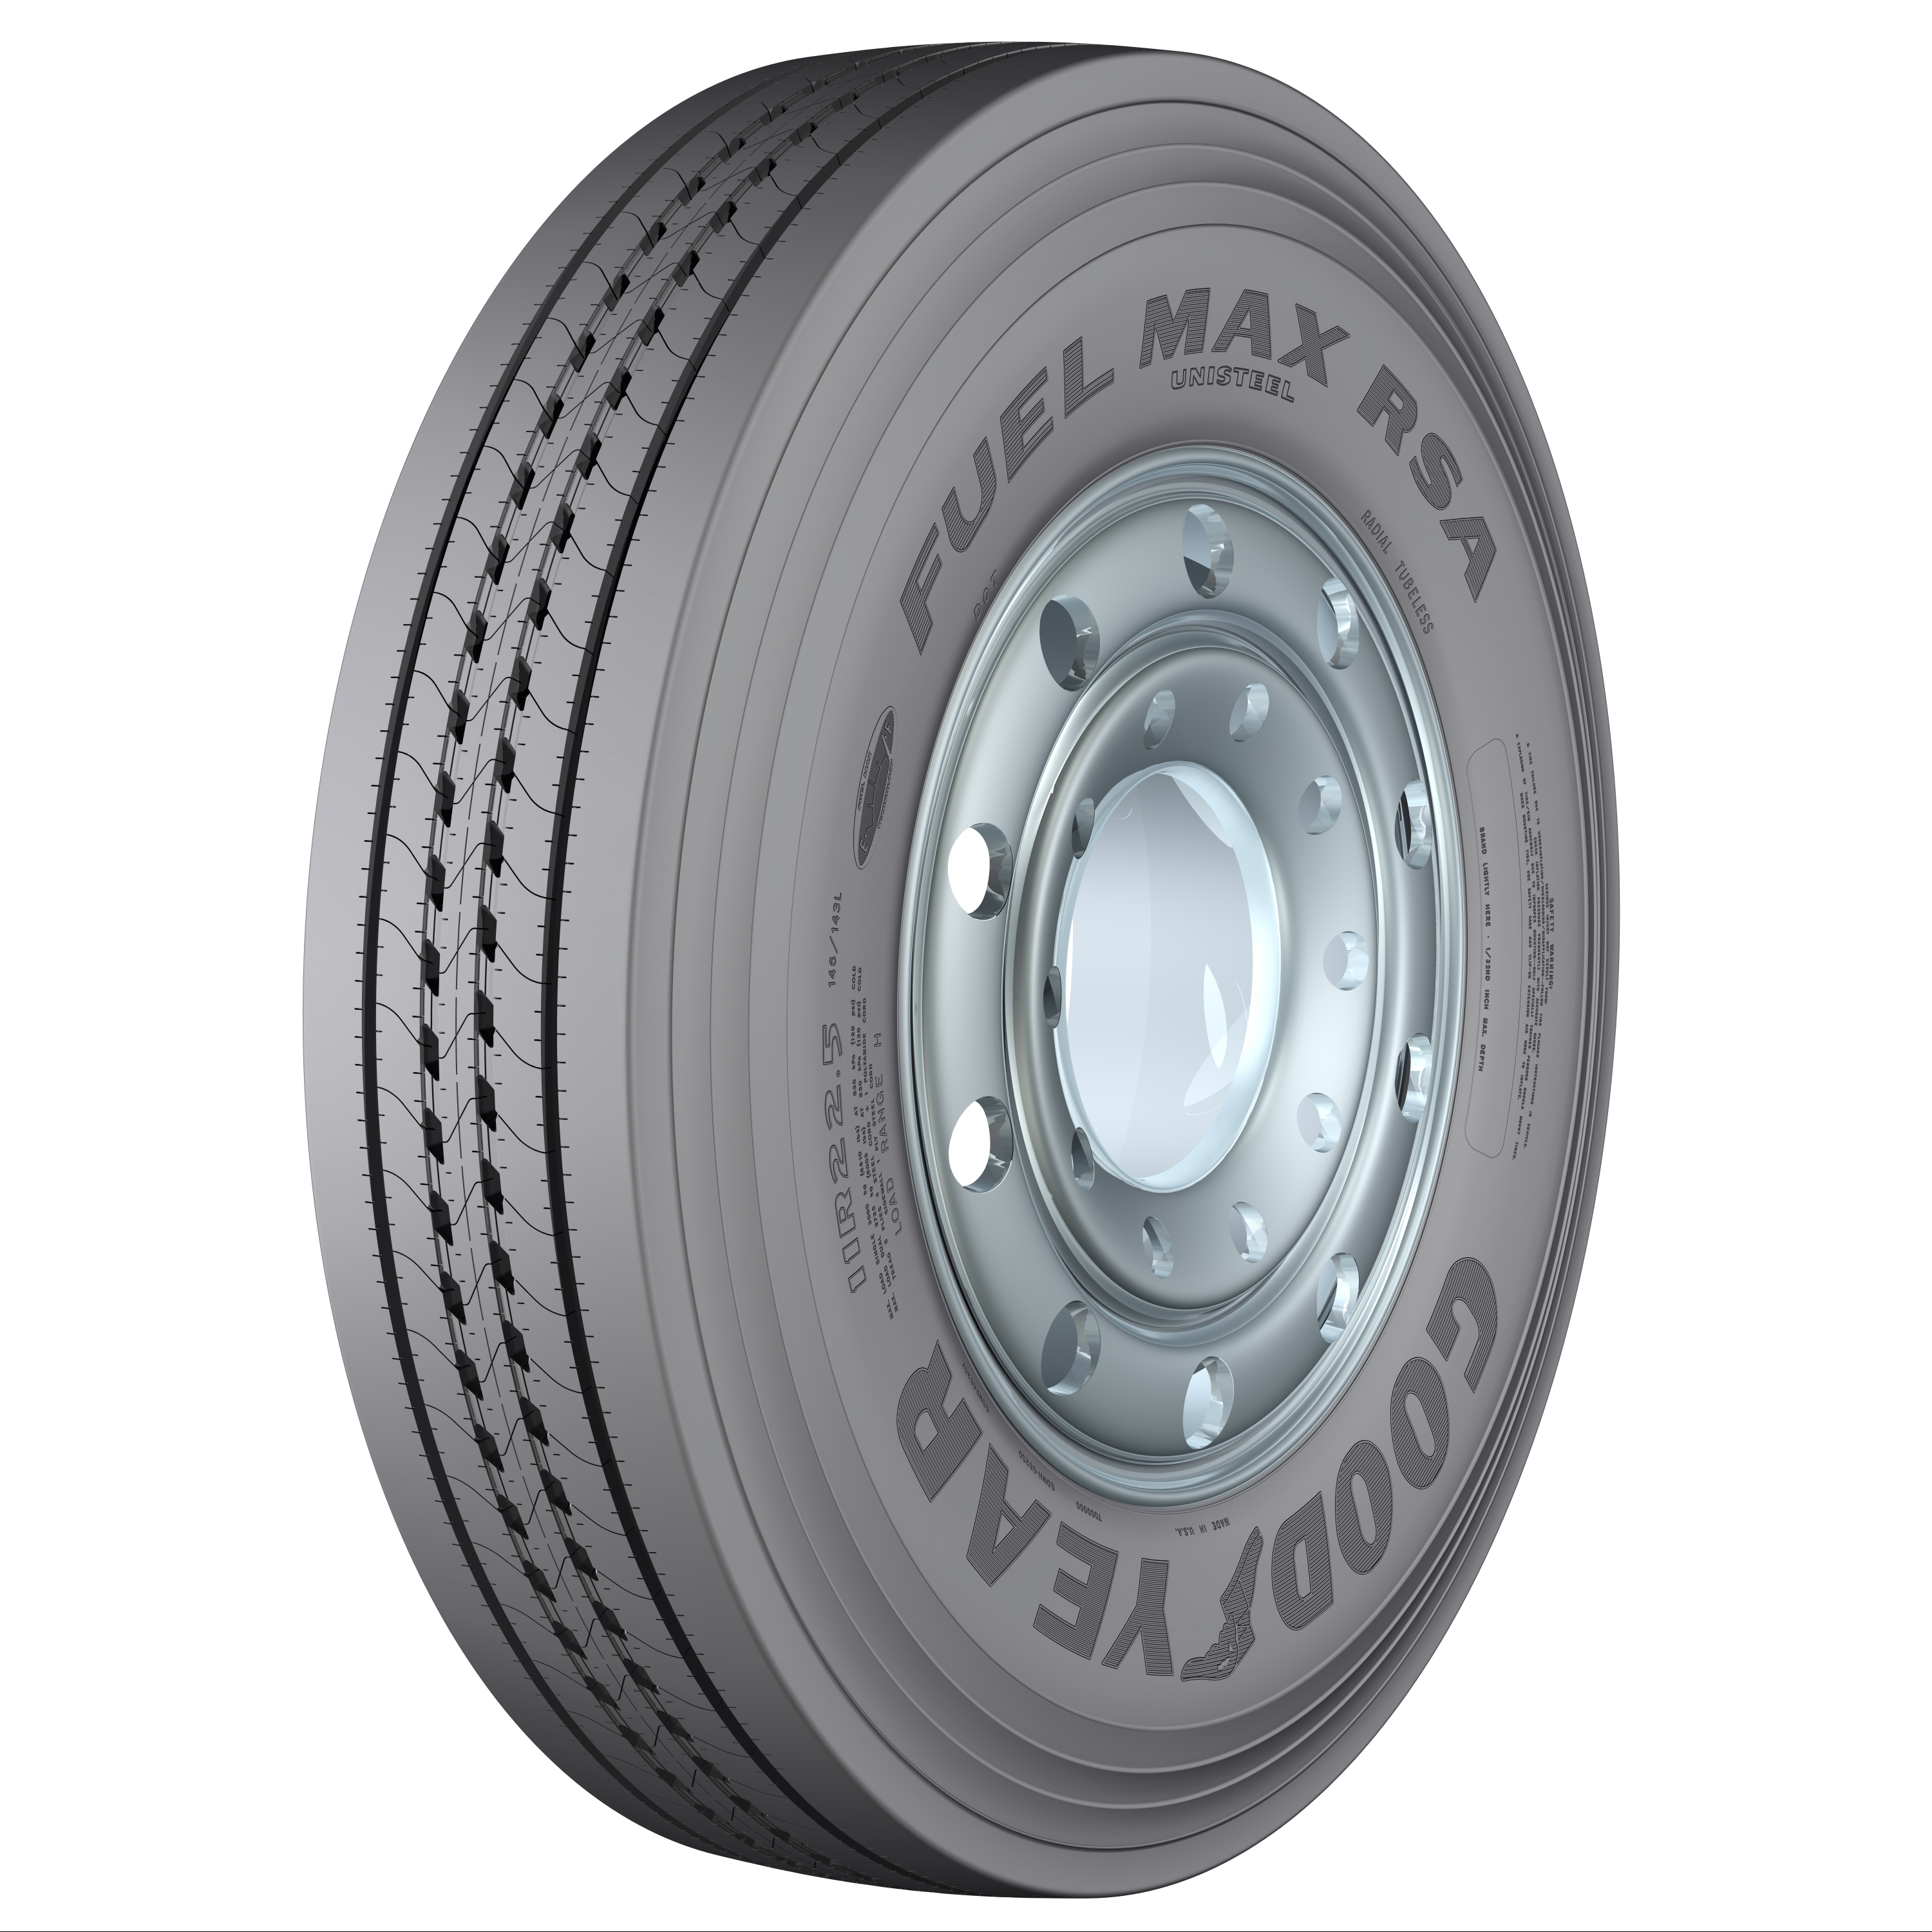 Goodyear launches new Fuel Max tire - Truck News